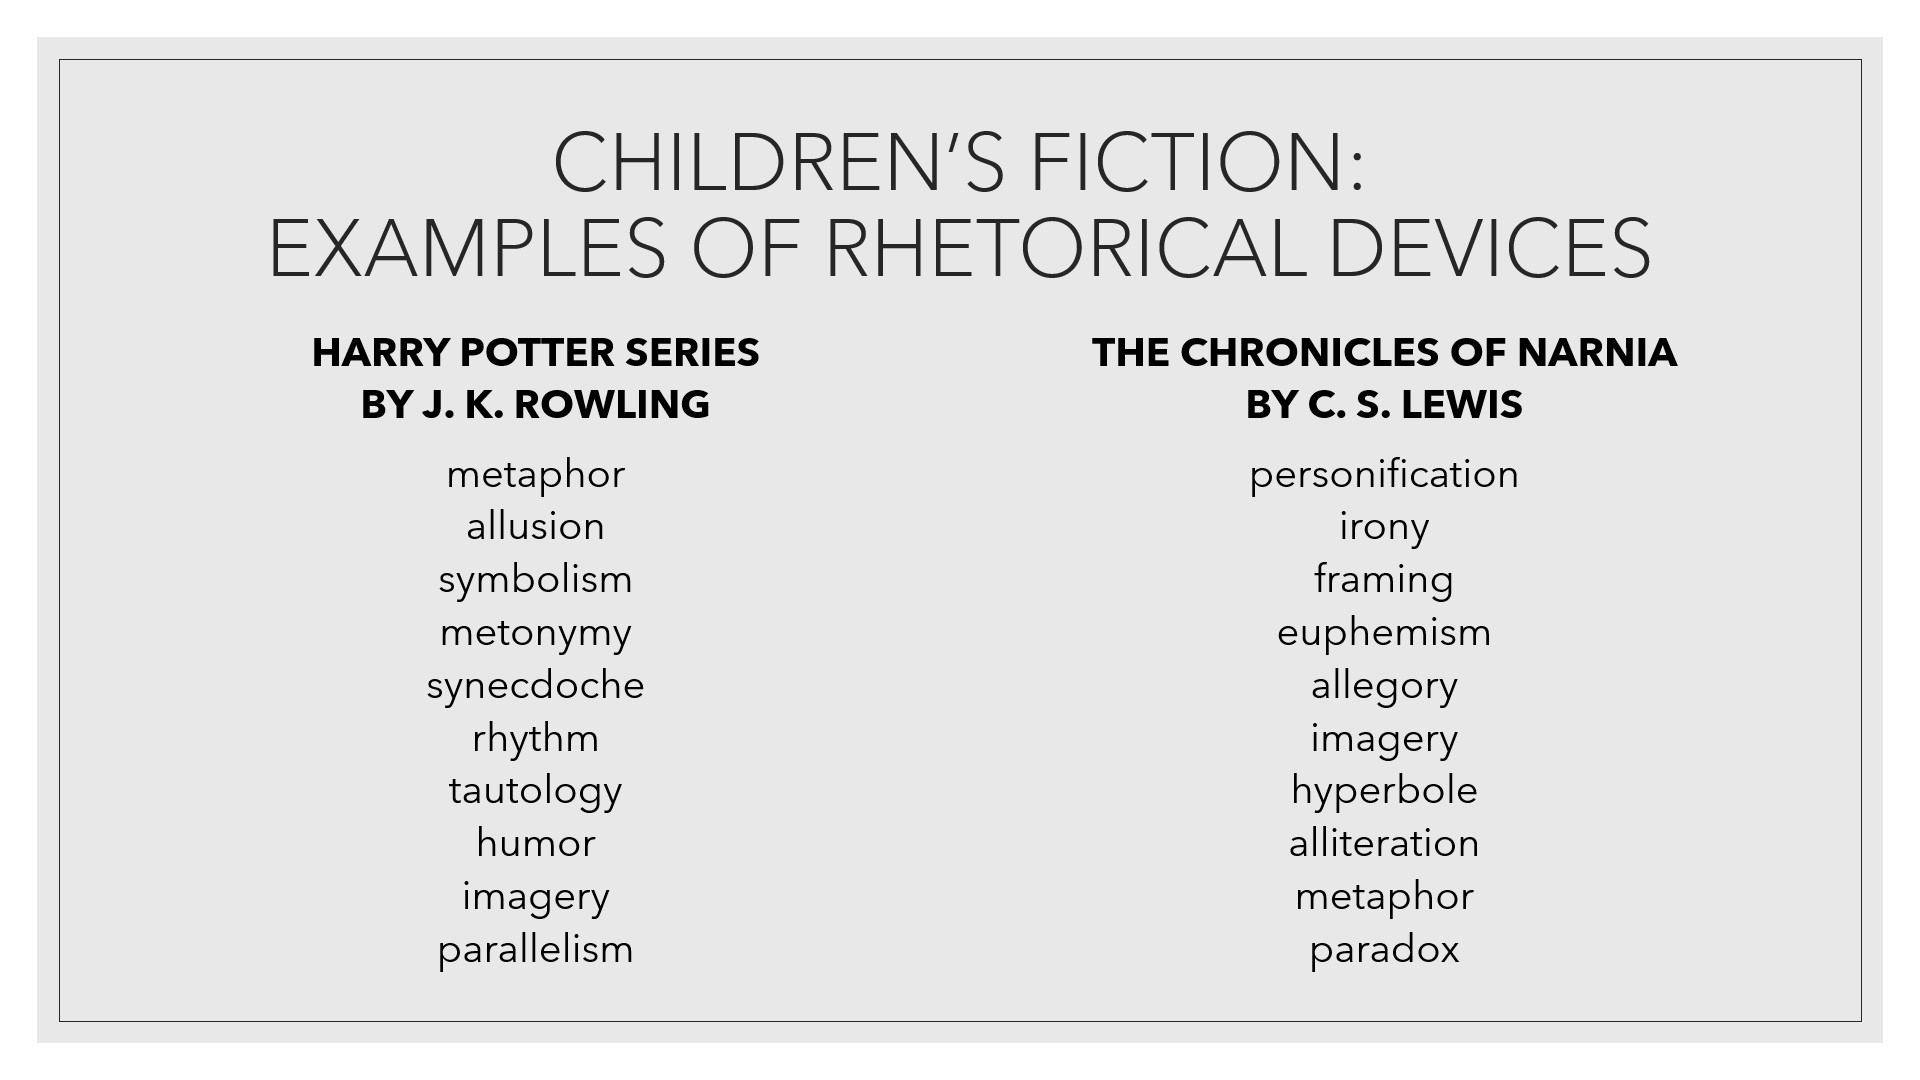 a list of rhetorical devices in harry potter and narnia, including metaphor, allusion, symbolism, personification, irony, euphemism, metonymy, rhythm, imagery, and parallelism